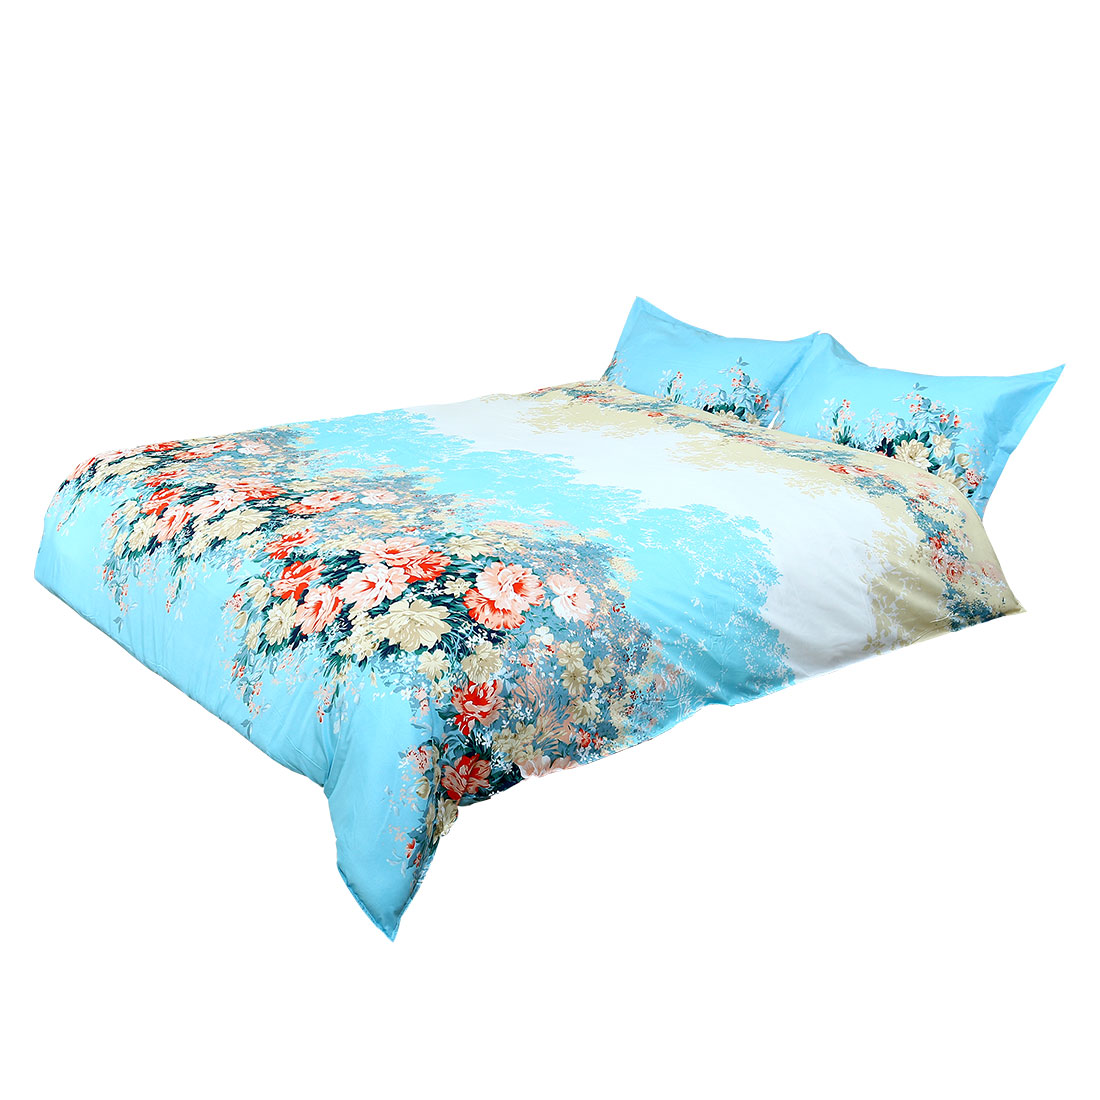 Flower Pattern Duvet Cover Pillowcase Quilt Cover Bedding Set Double Size Teal